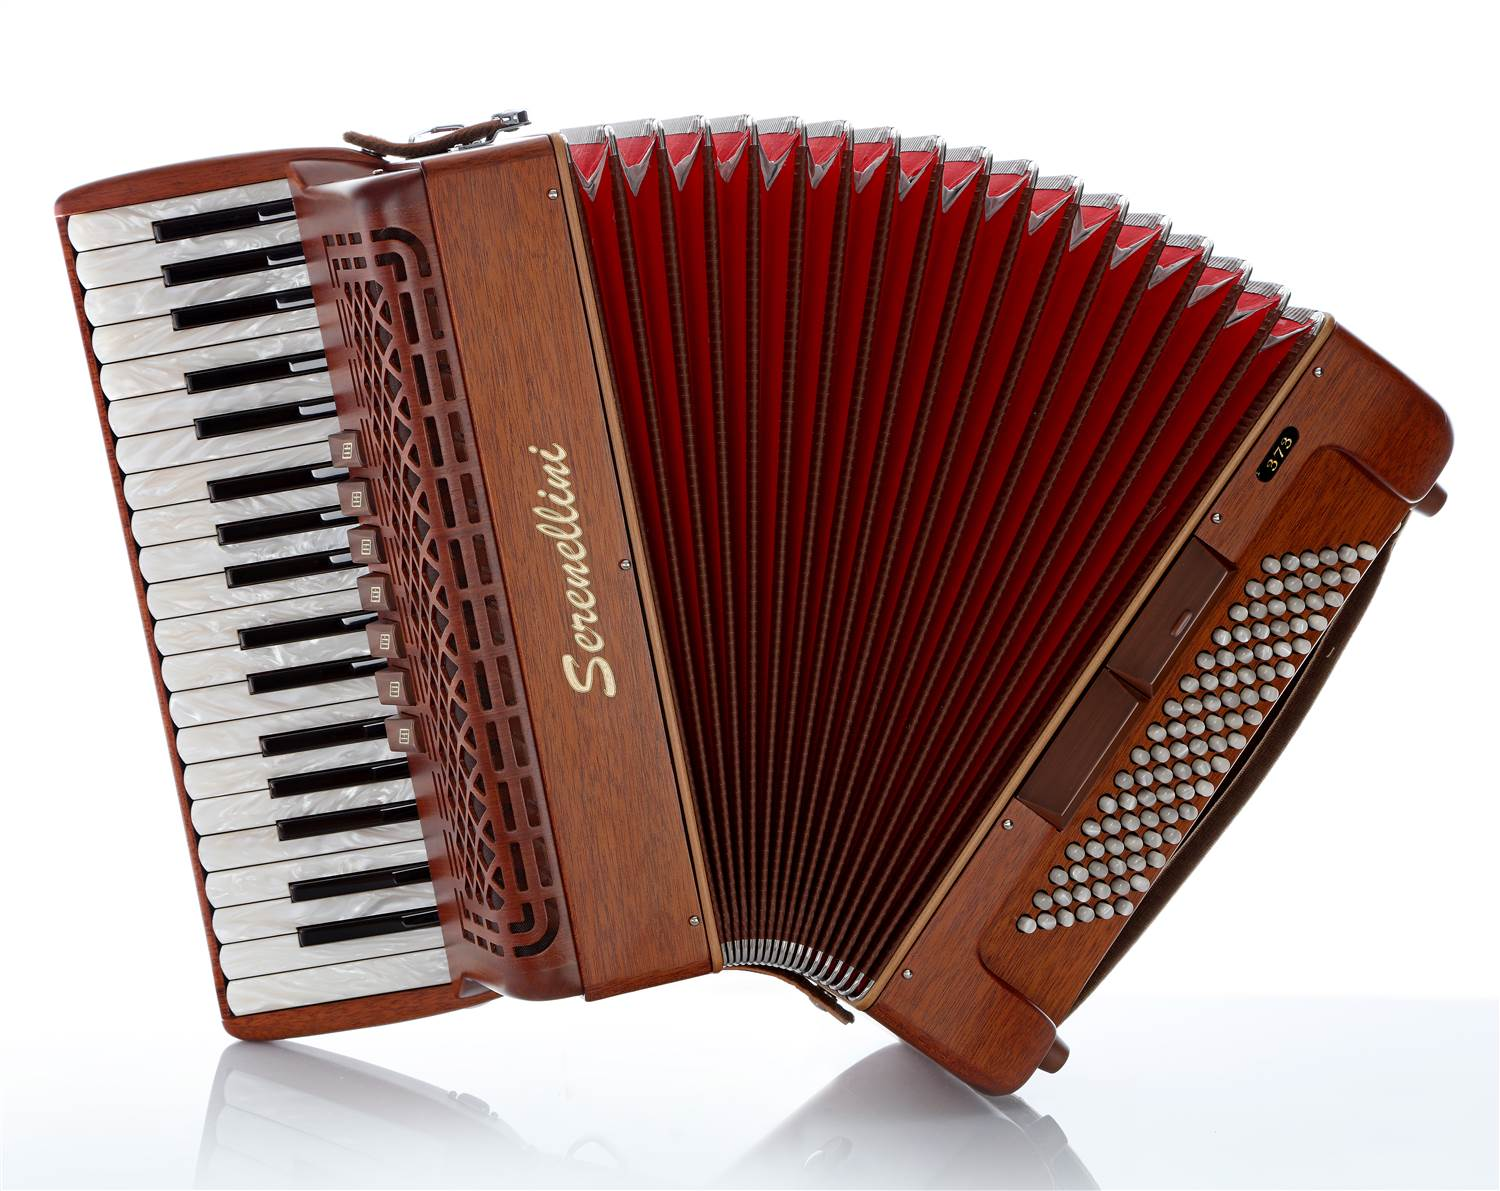 Serenellini 373MW piano accordion